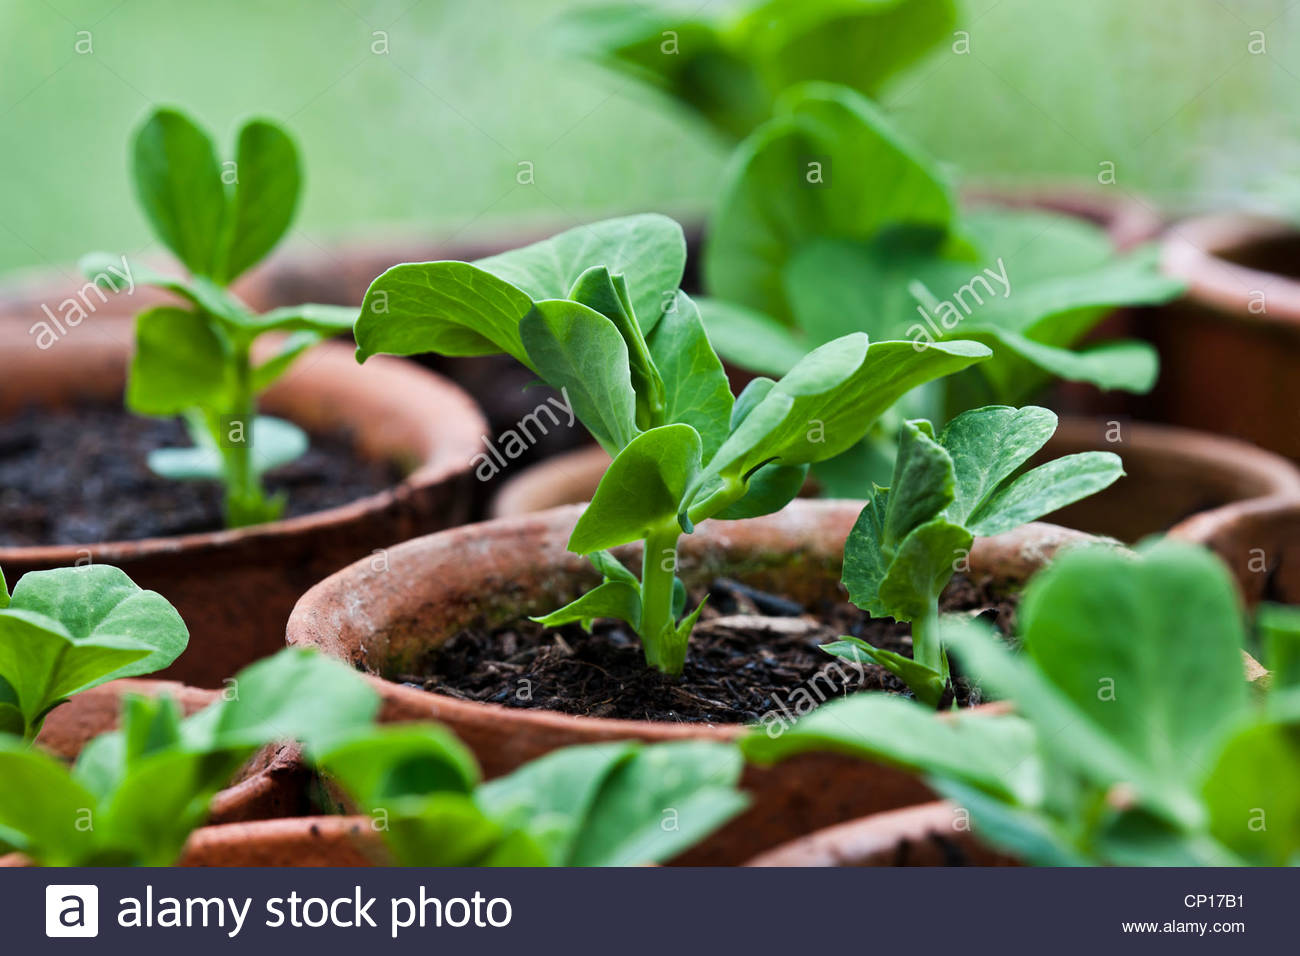 Pea Seedling Germinating First Leaf Leaves Pots Small Seed Tray Compost  Home Grown Organic Edible Rows Kitchen Summer April Gard